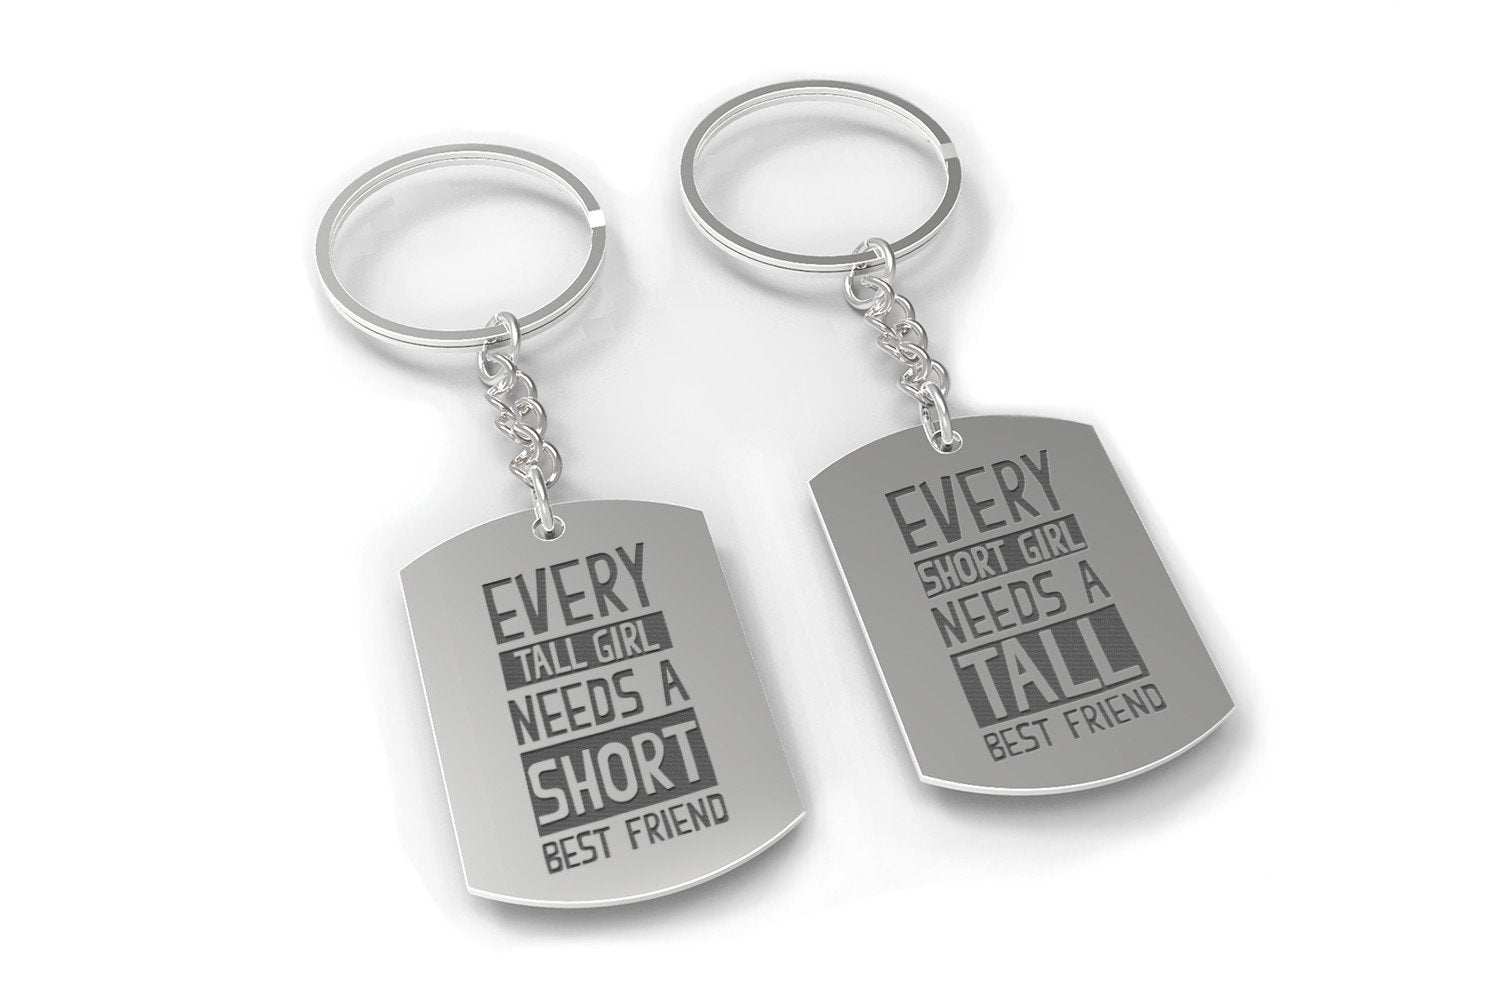 Short Tall Funny Matching BFF Key Chain for Best Friends Great Gift